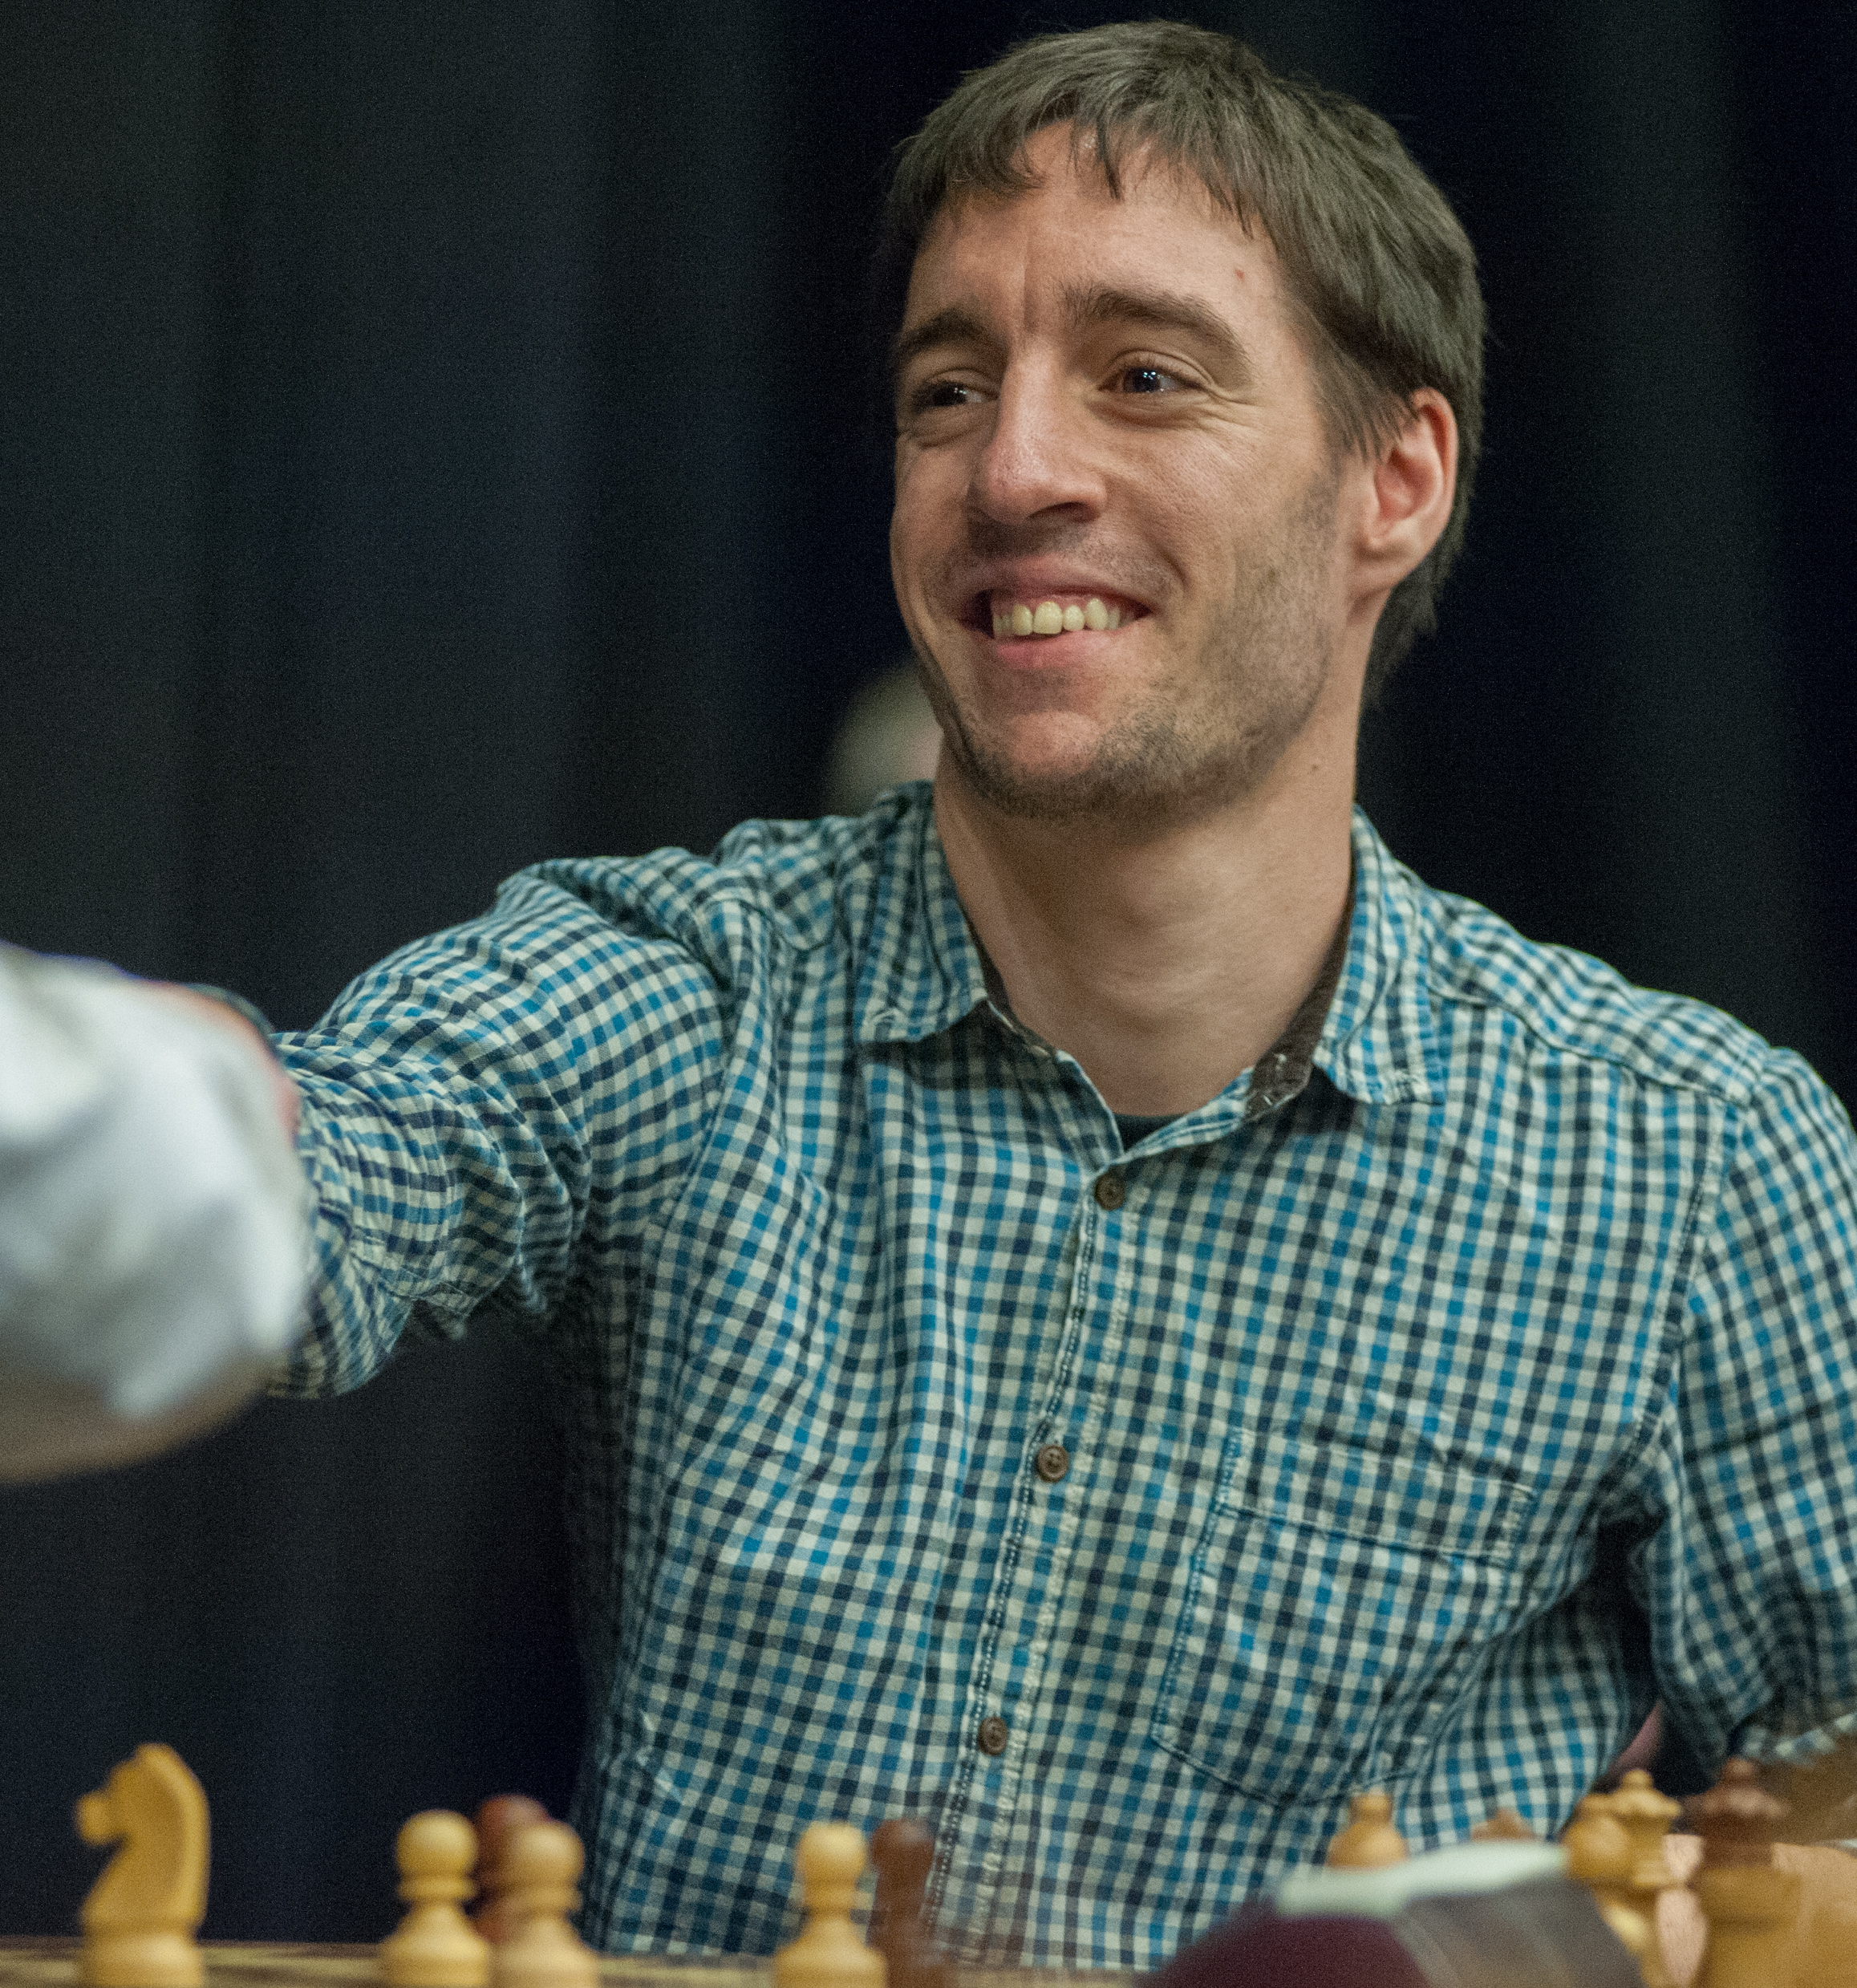 IM Tom Rendle at the King's Place Rapidplay, 2013, Courtesy of John Upham Photography